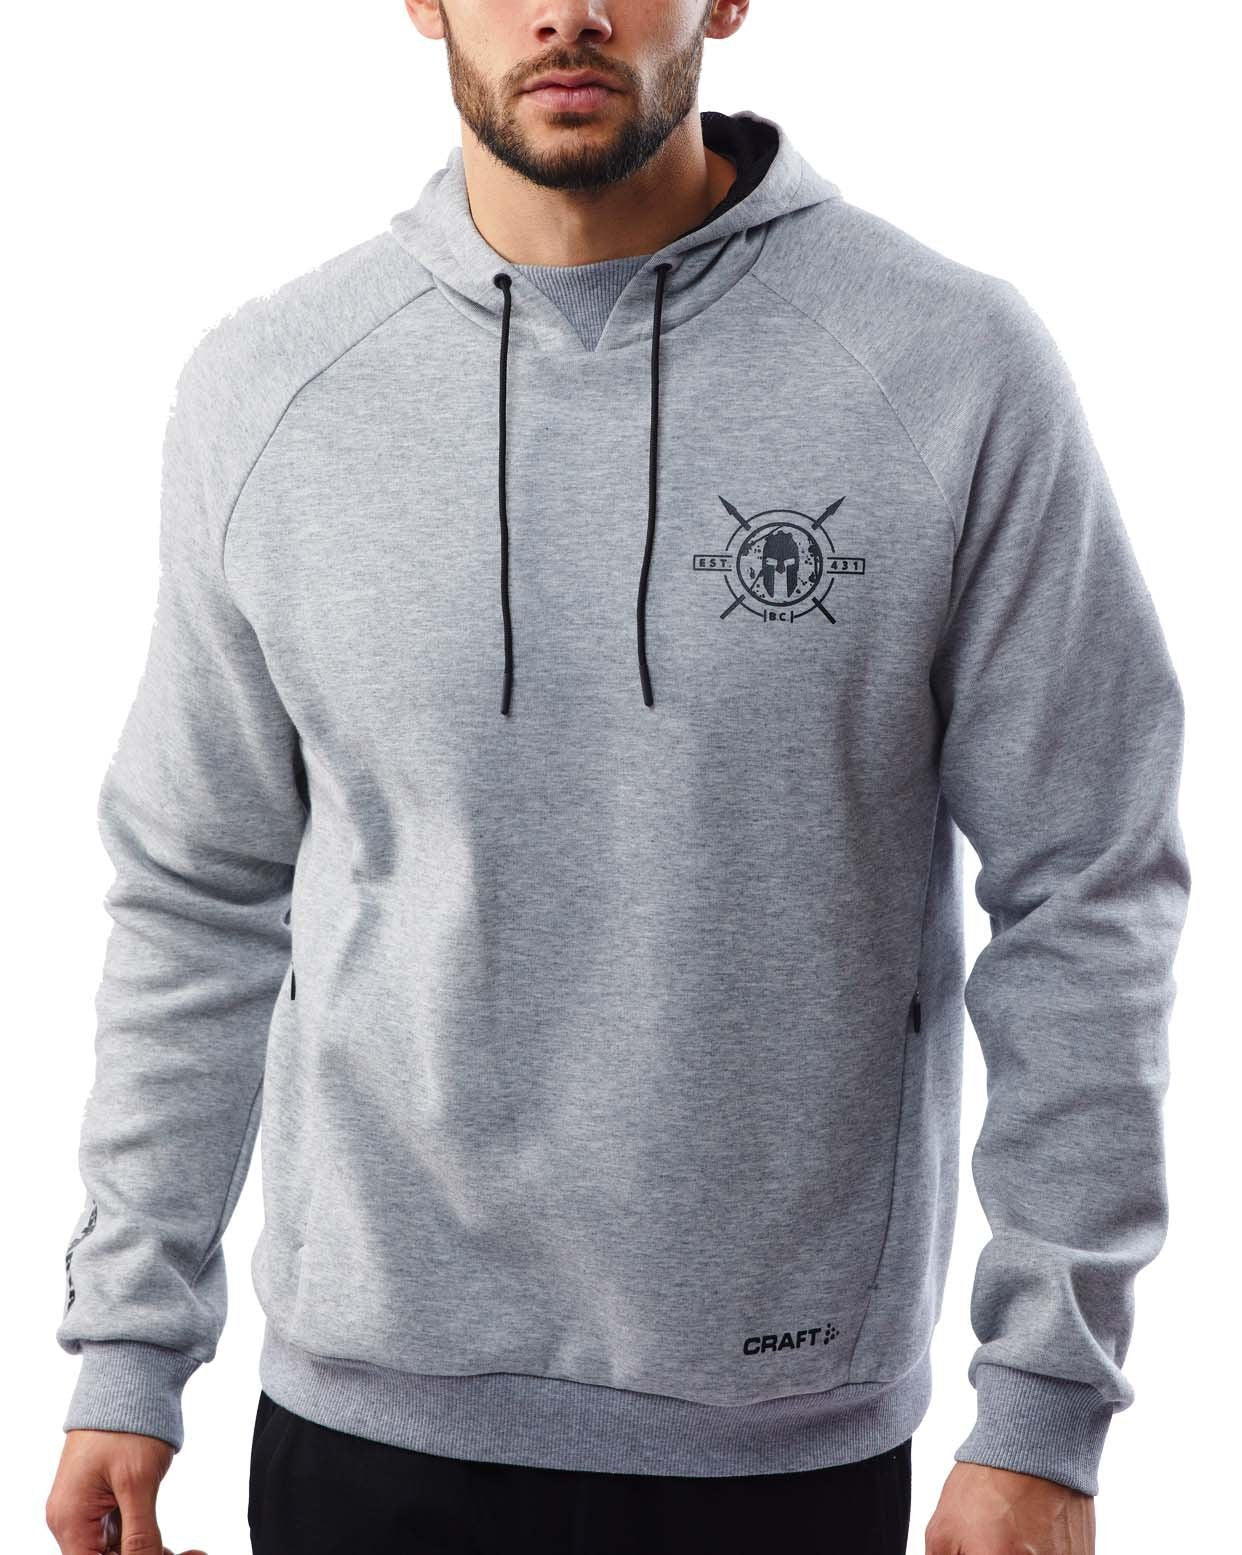 CRAFT SPARTAN By CRAFT District Pullover Hoodie - Men's Gray S